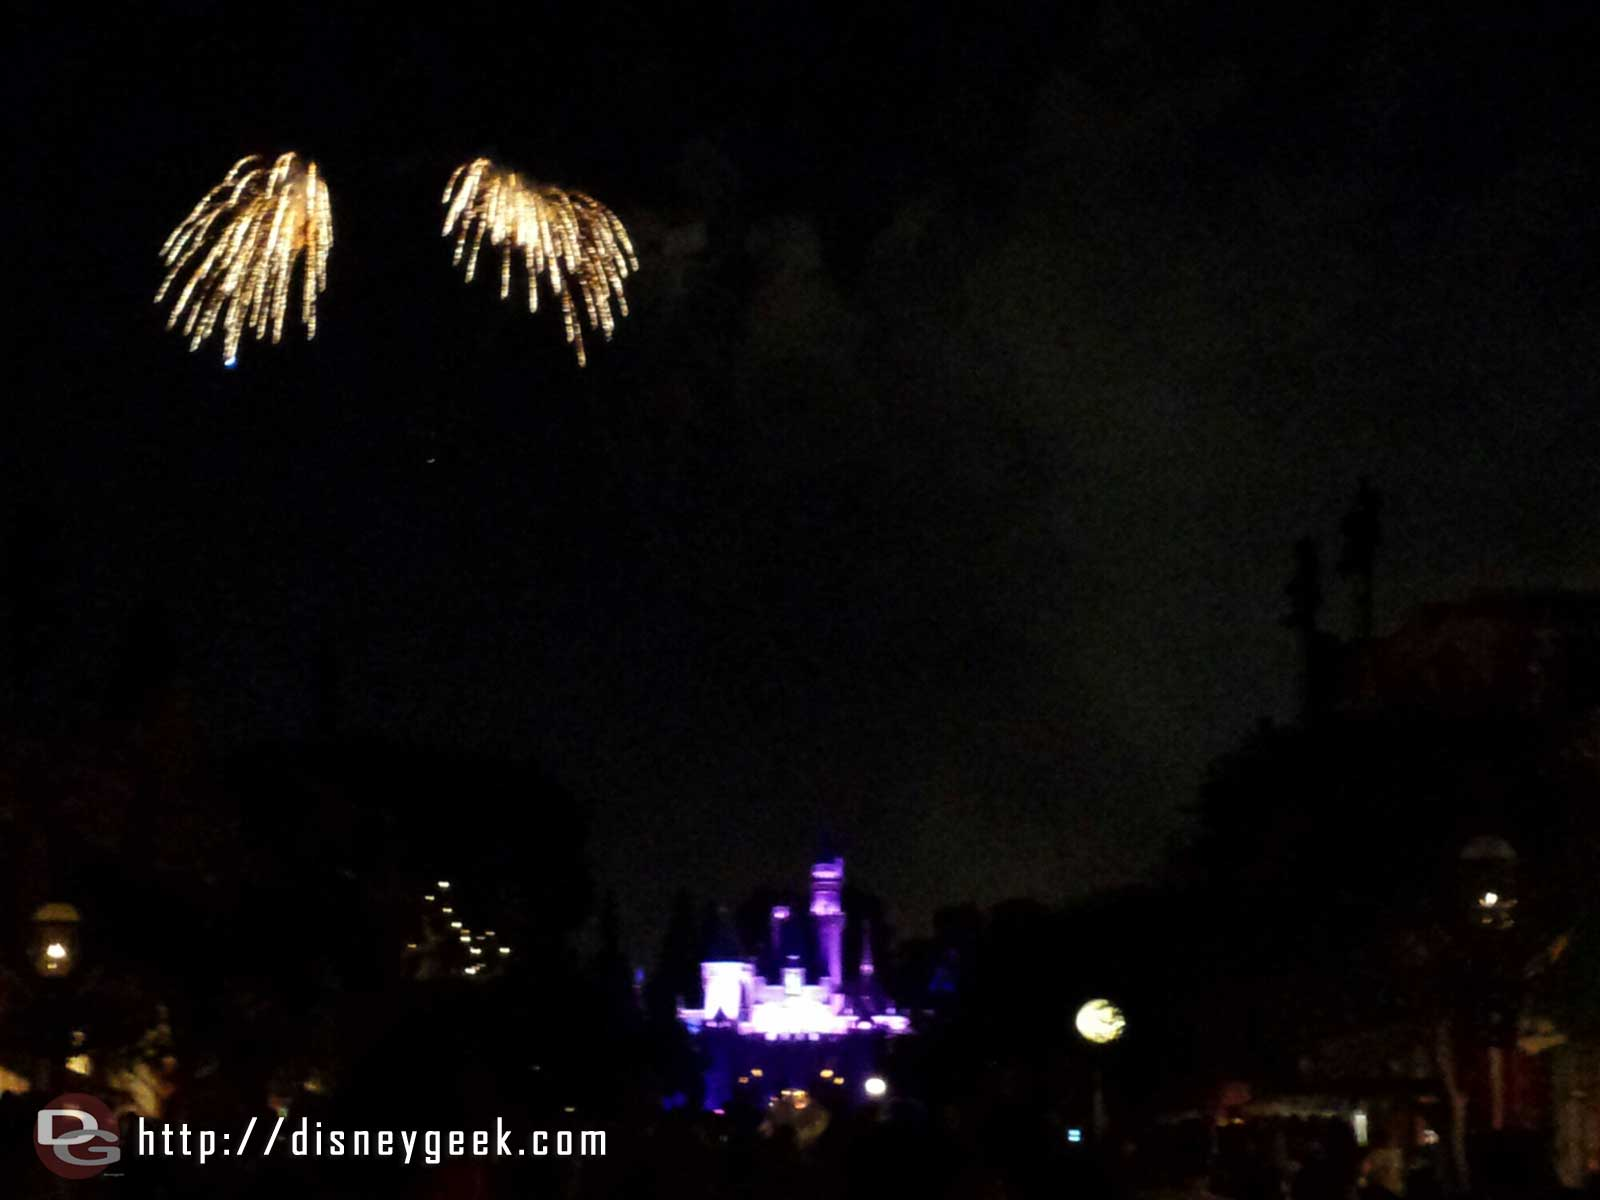 Dumbo did not fly during Magical tonight.  Tinkerbell did for the opening.